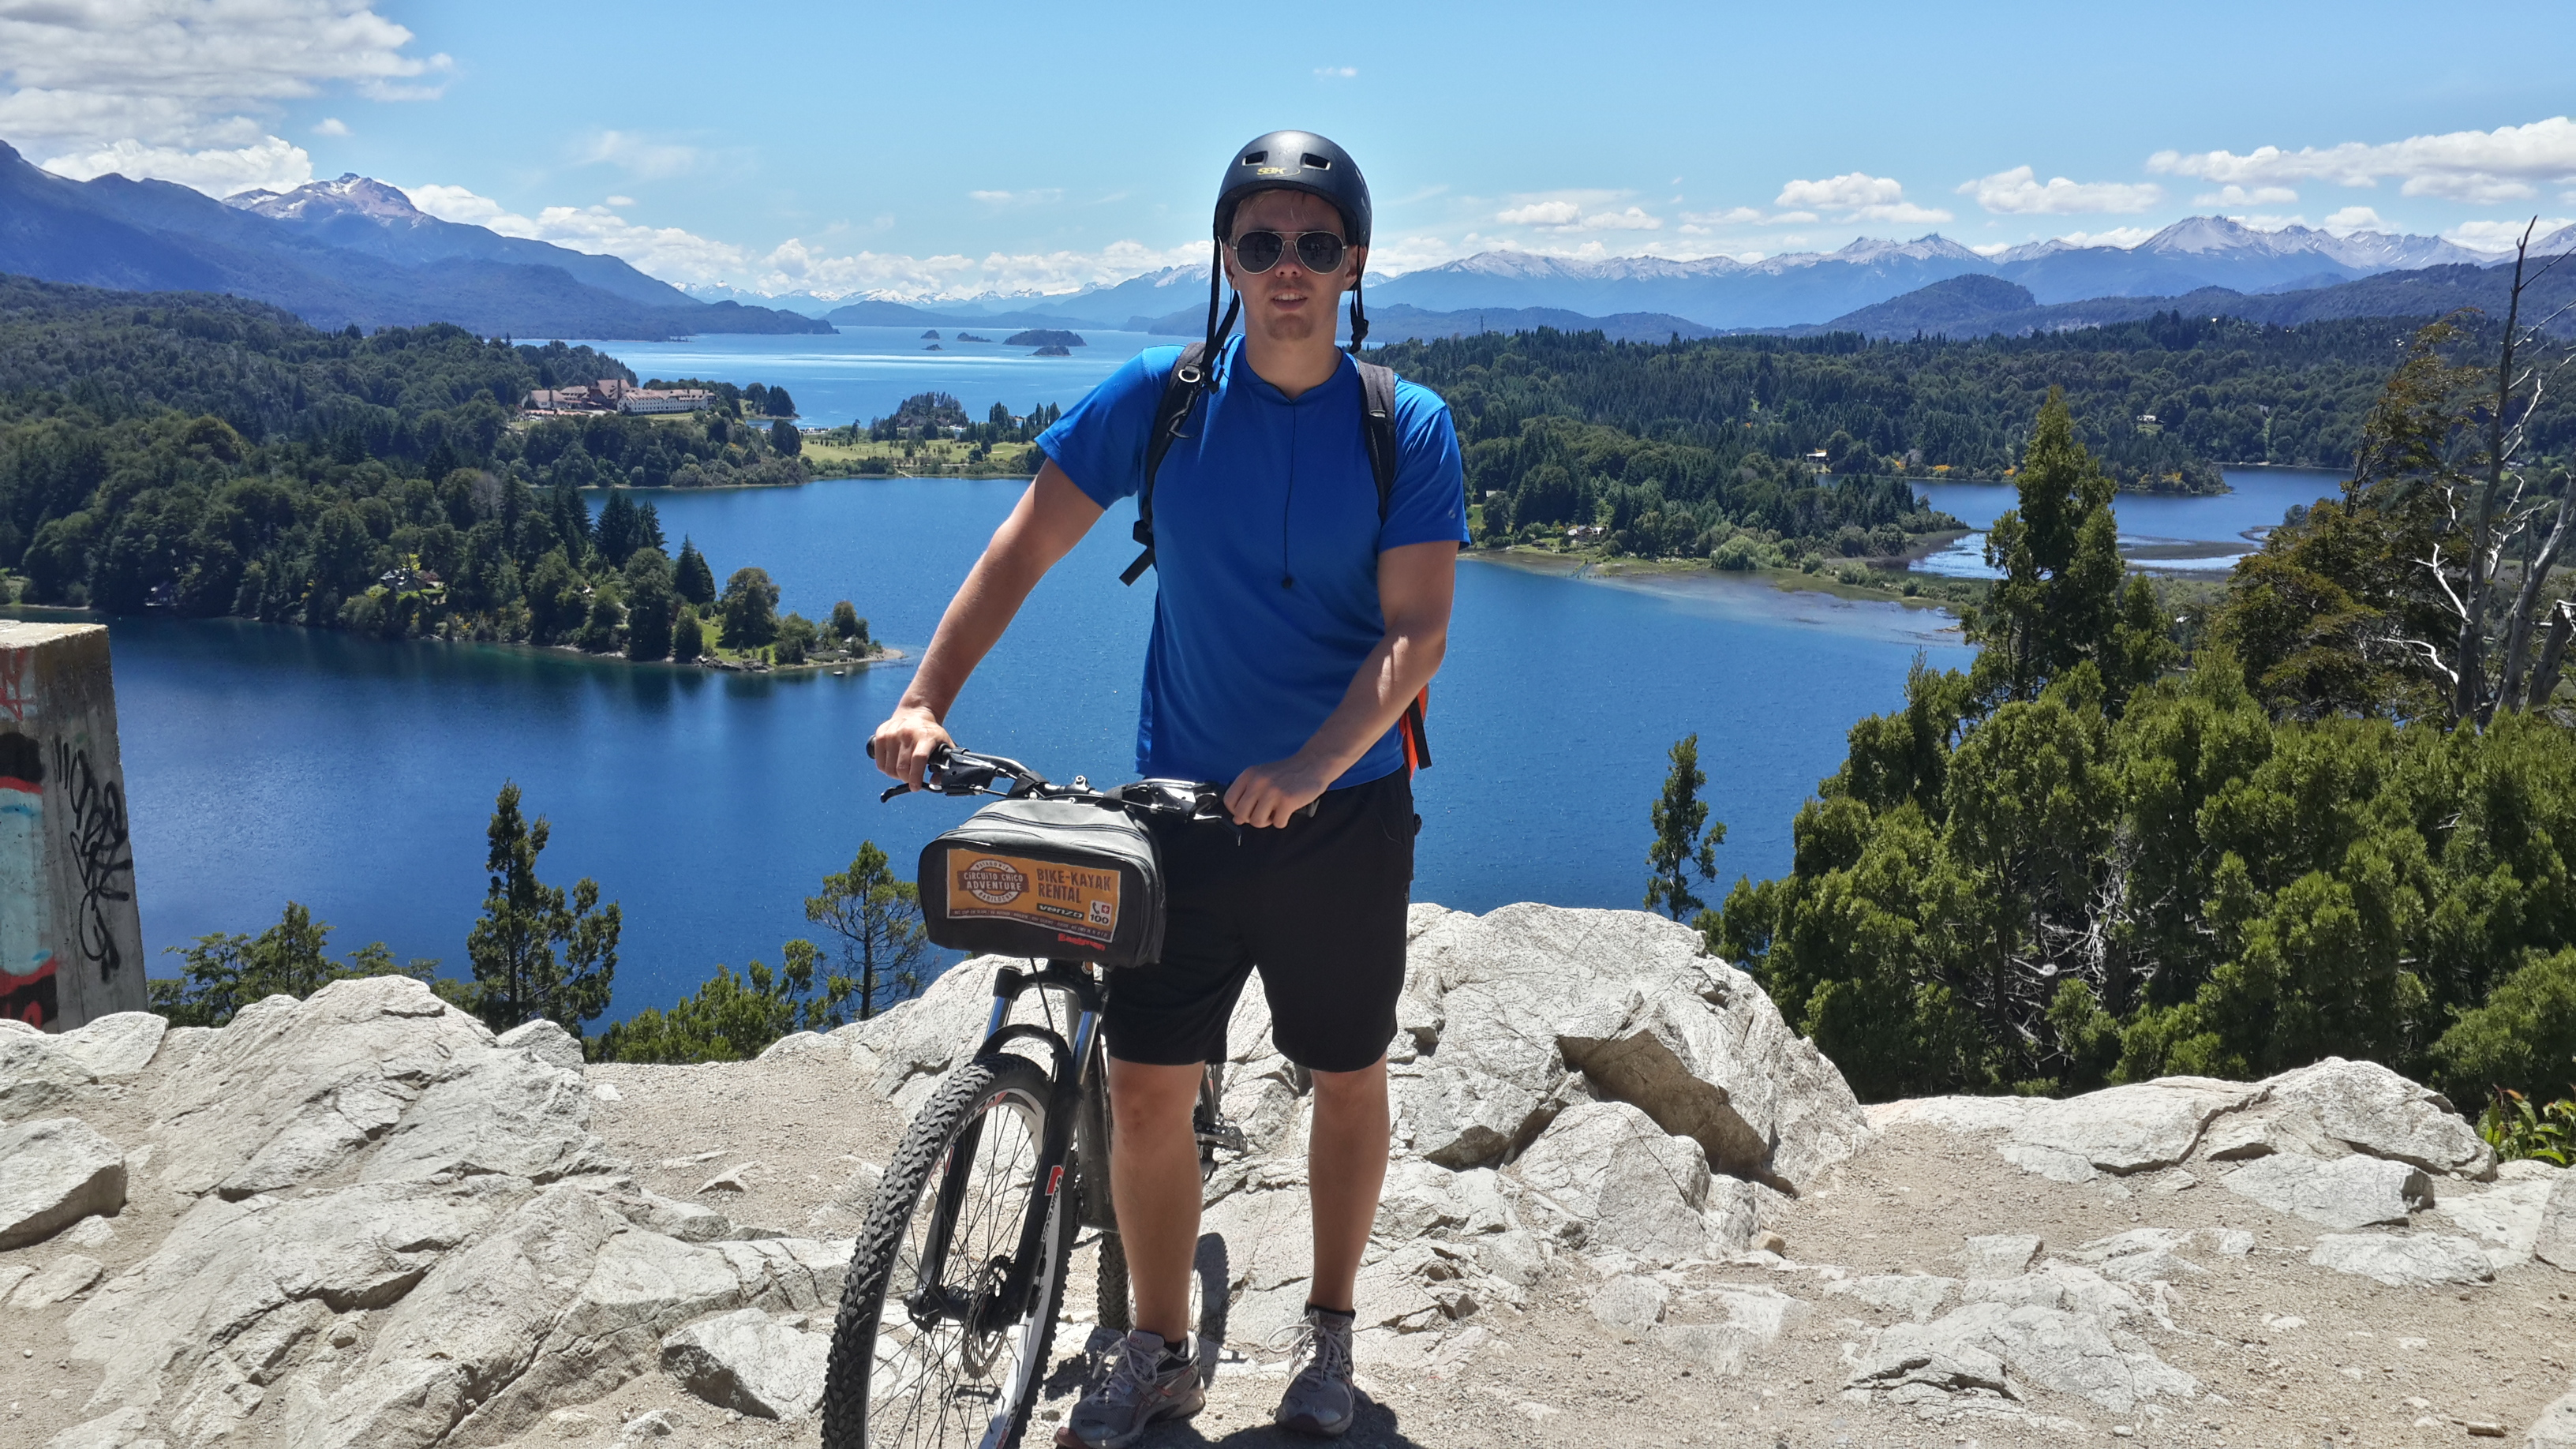 Circuito Chico Bariloche : Traveling through patagonia around the world trip days 30.11.2016